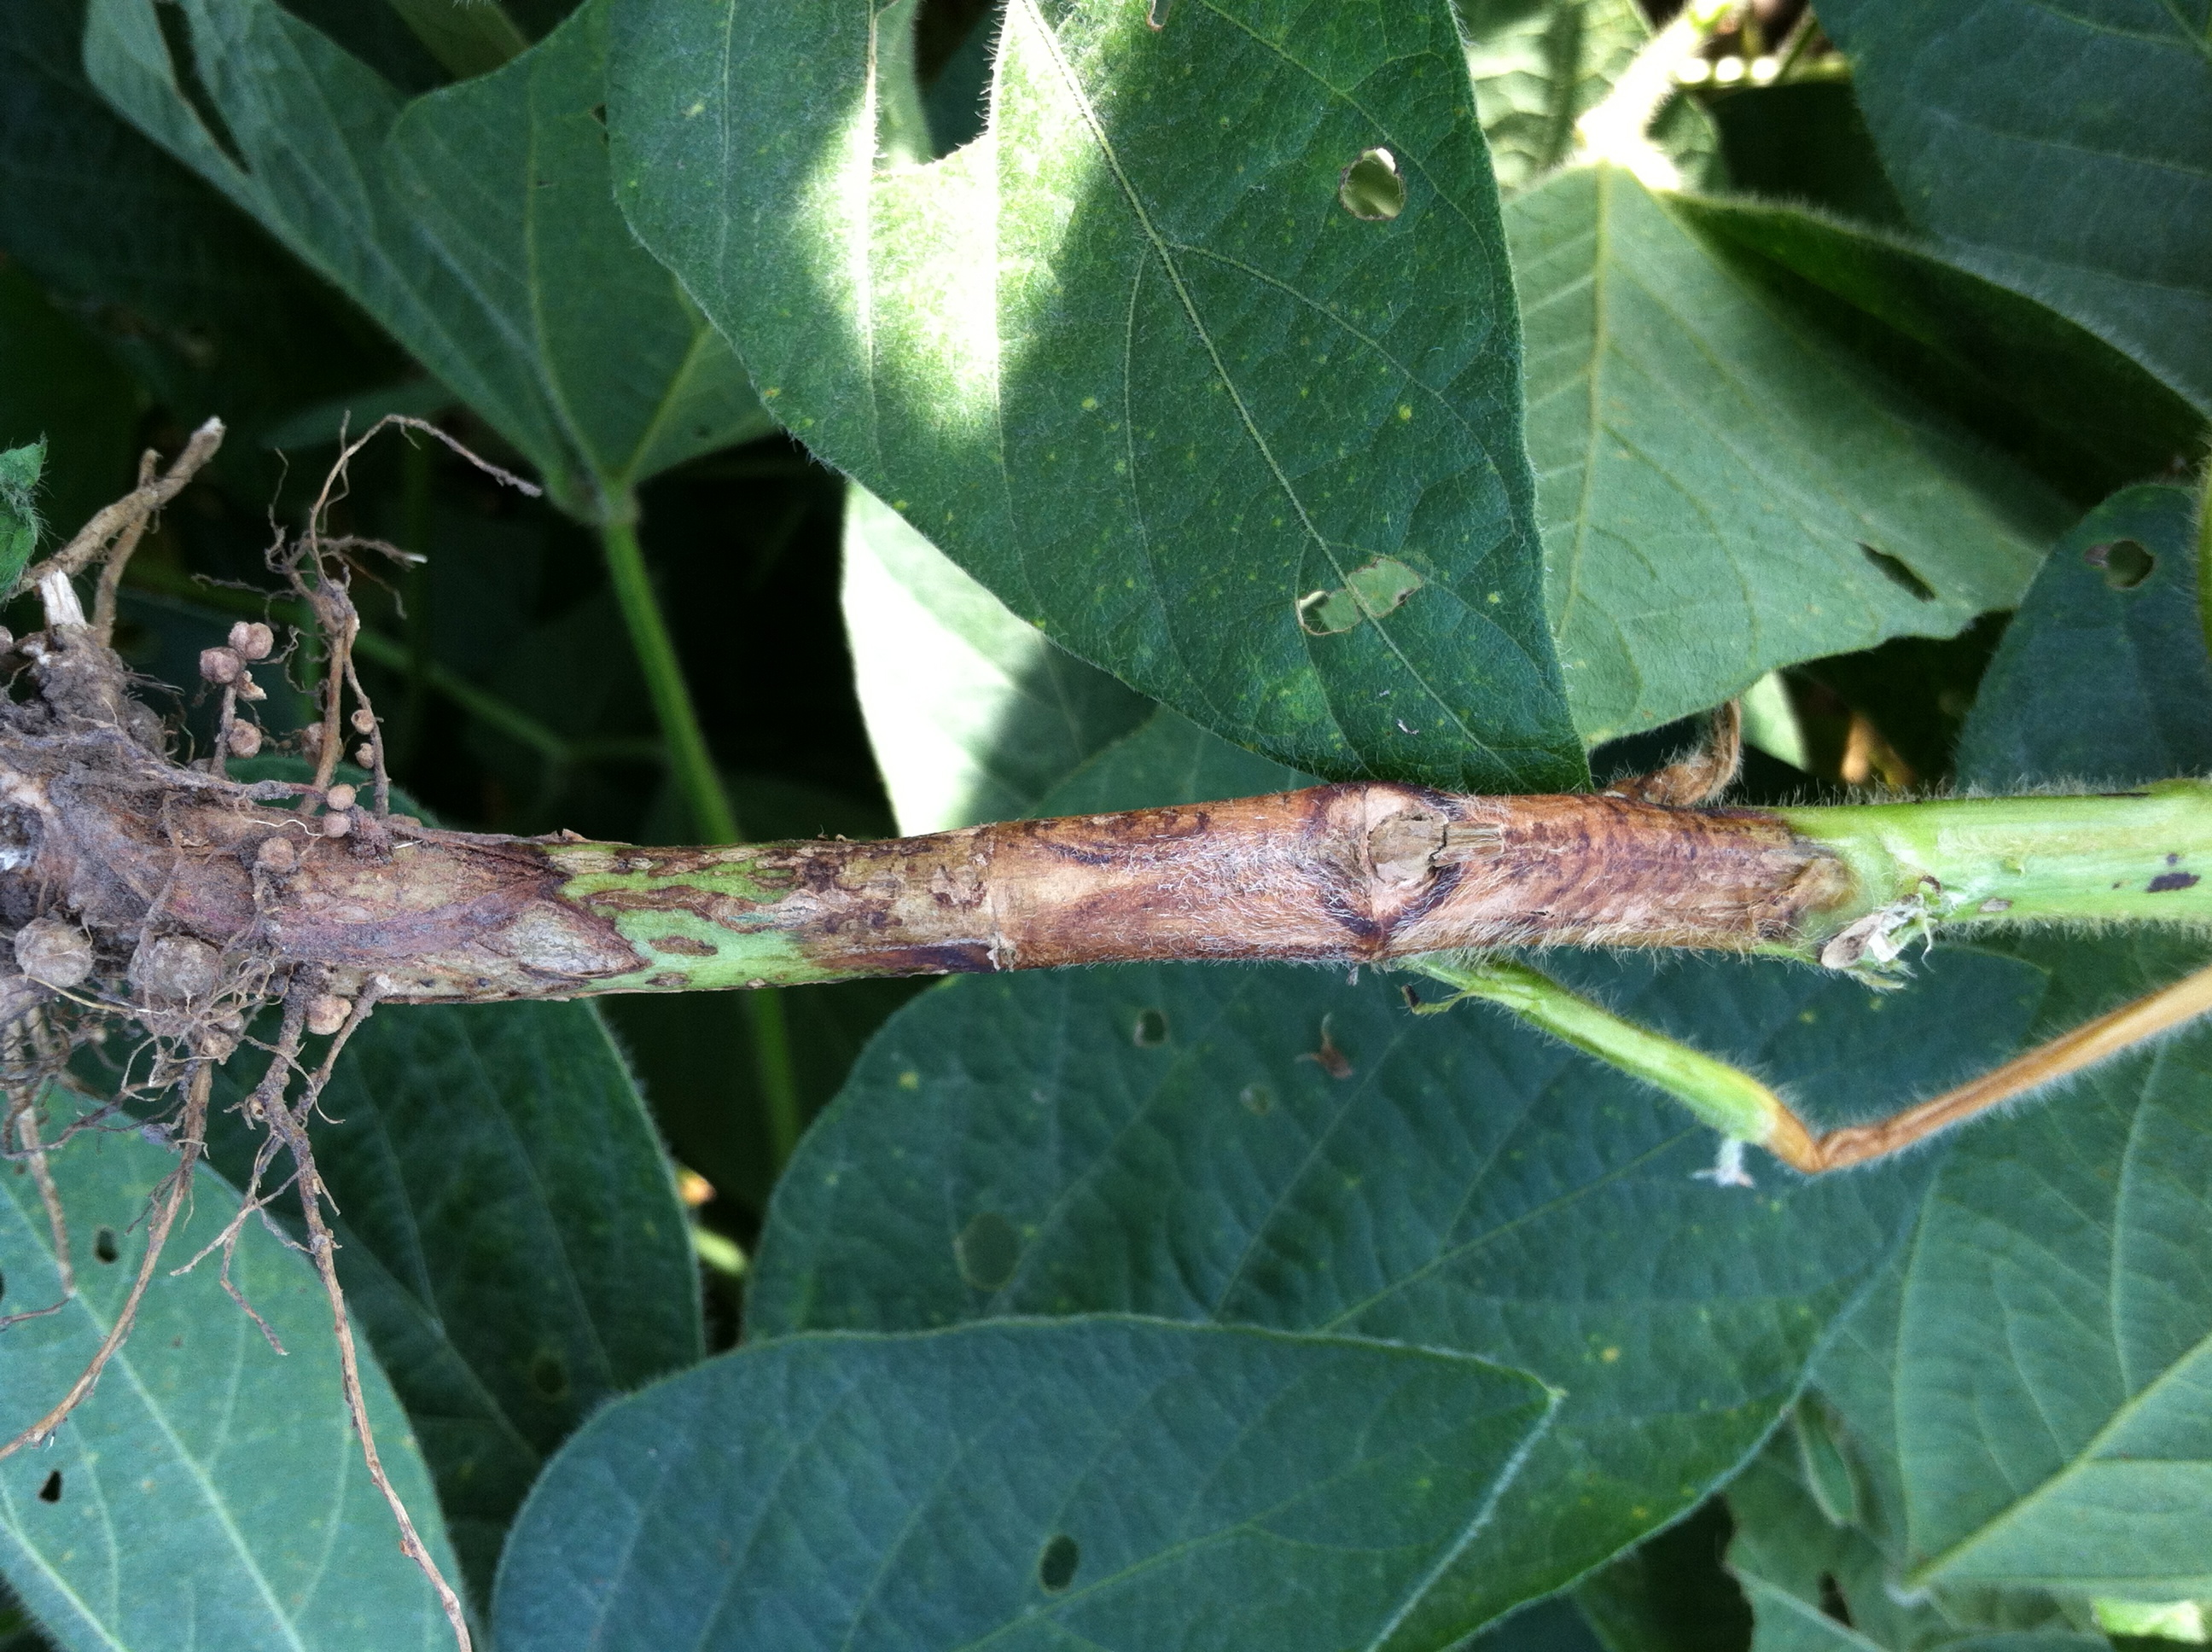 Characteristic stem canker lesion on soybean stem.